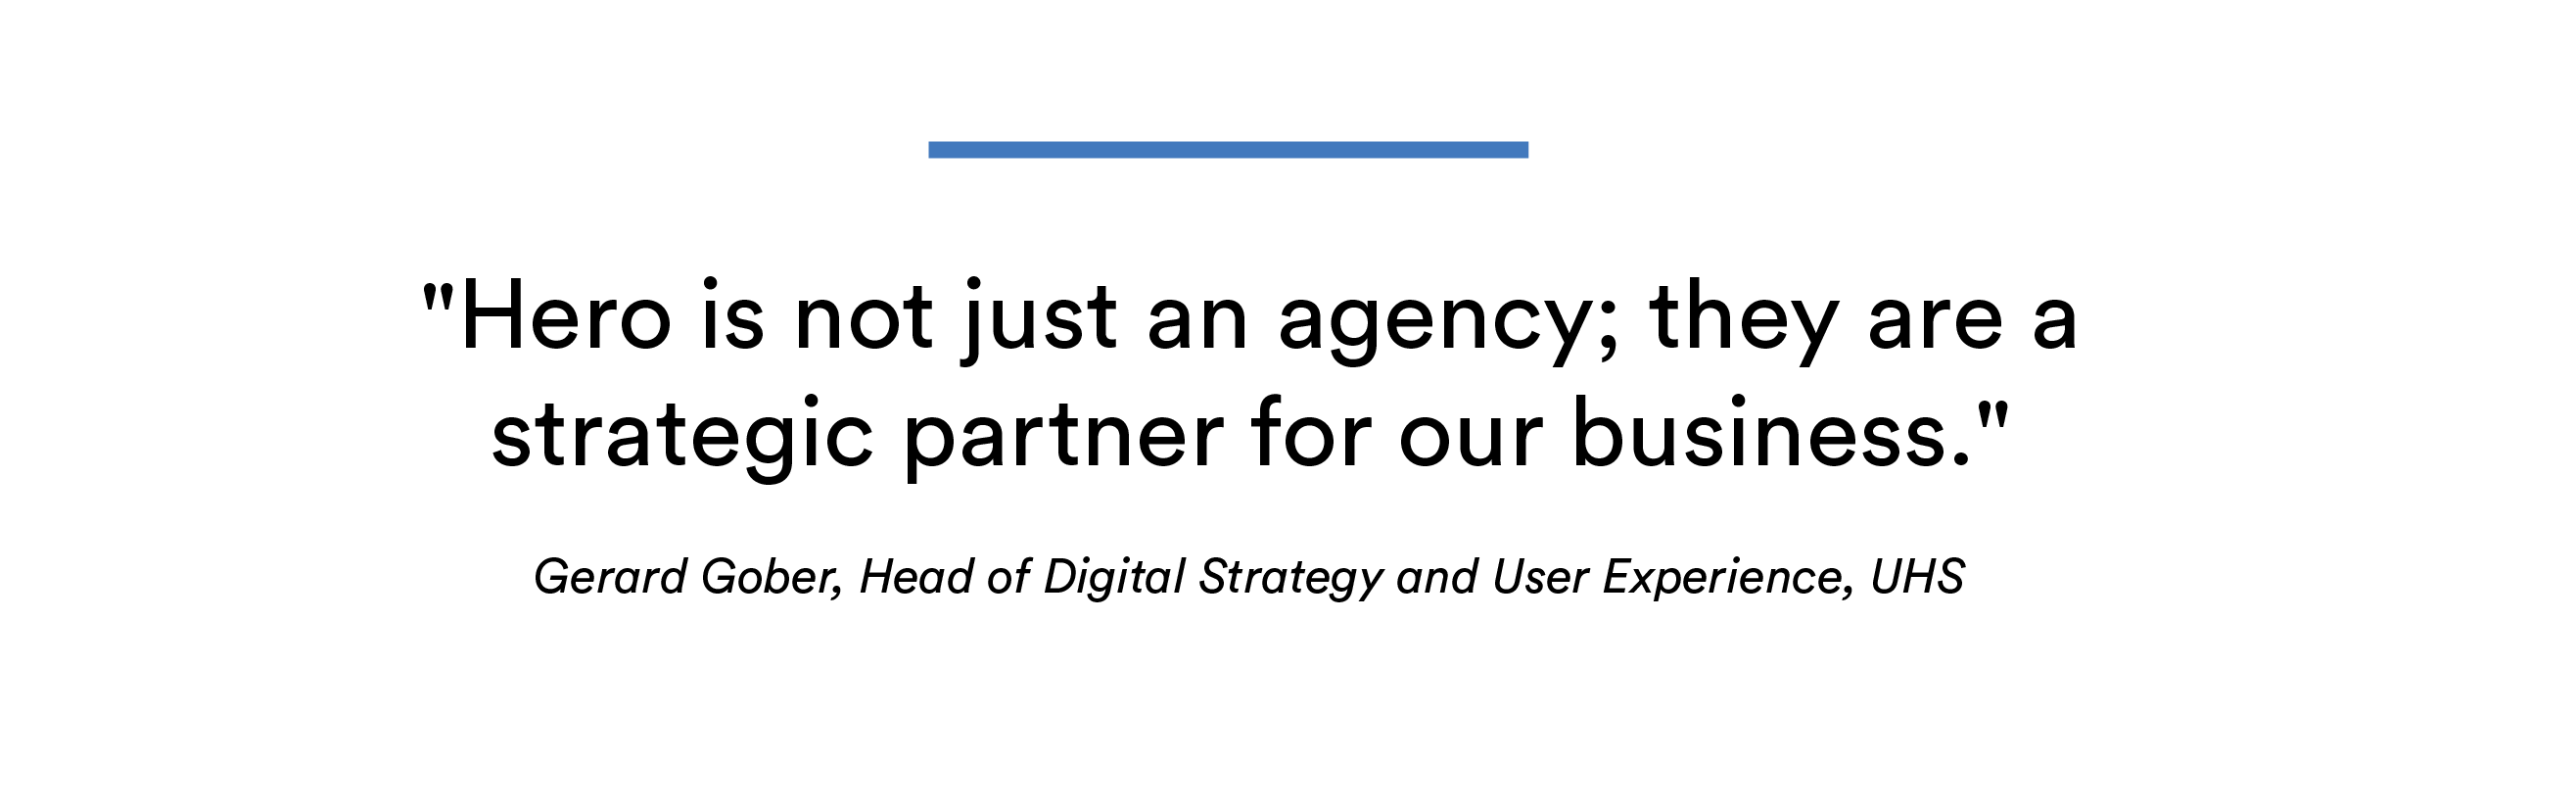 "Quote: ""Hero is not just an agency; they are a strategic partner for our business."" Gerard Gober, Head of Digital Strategy and User Experience, UHS"